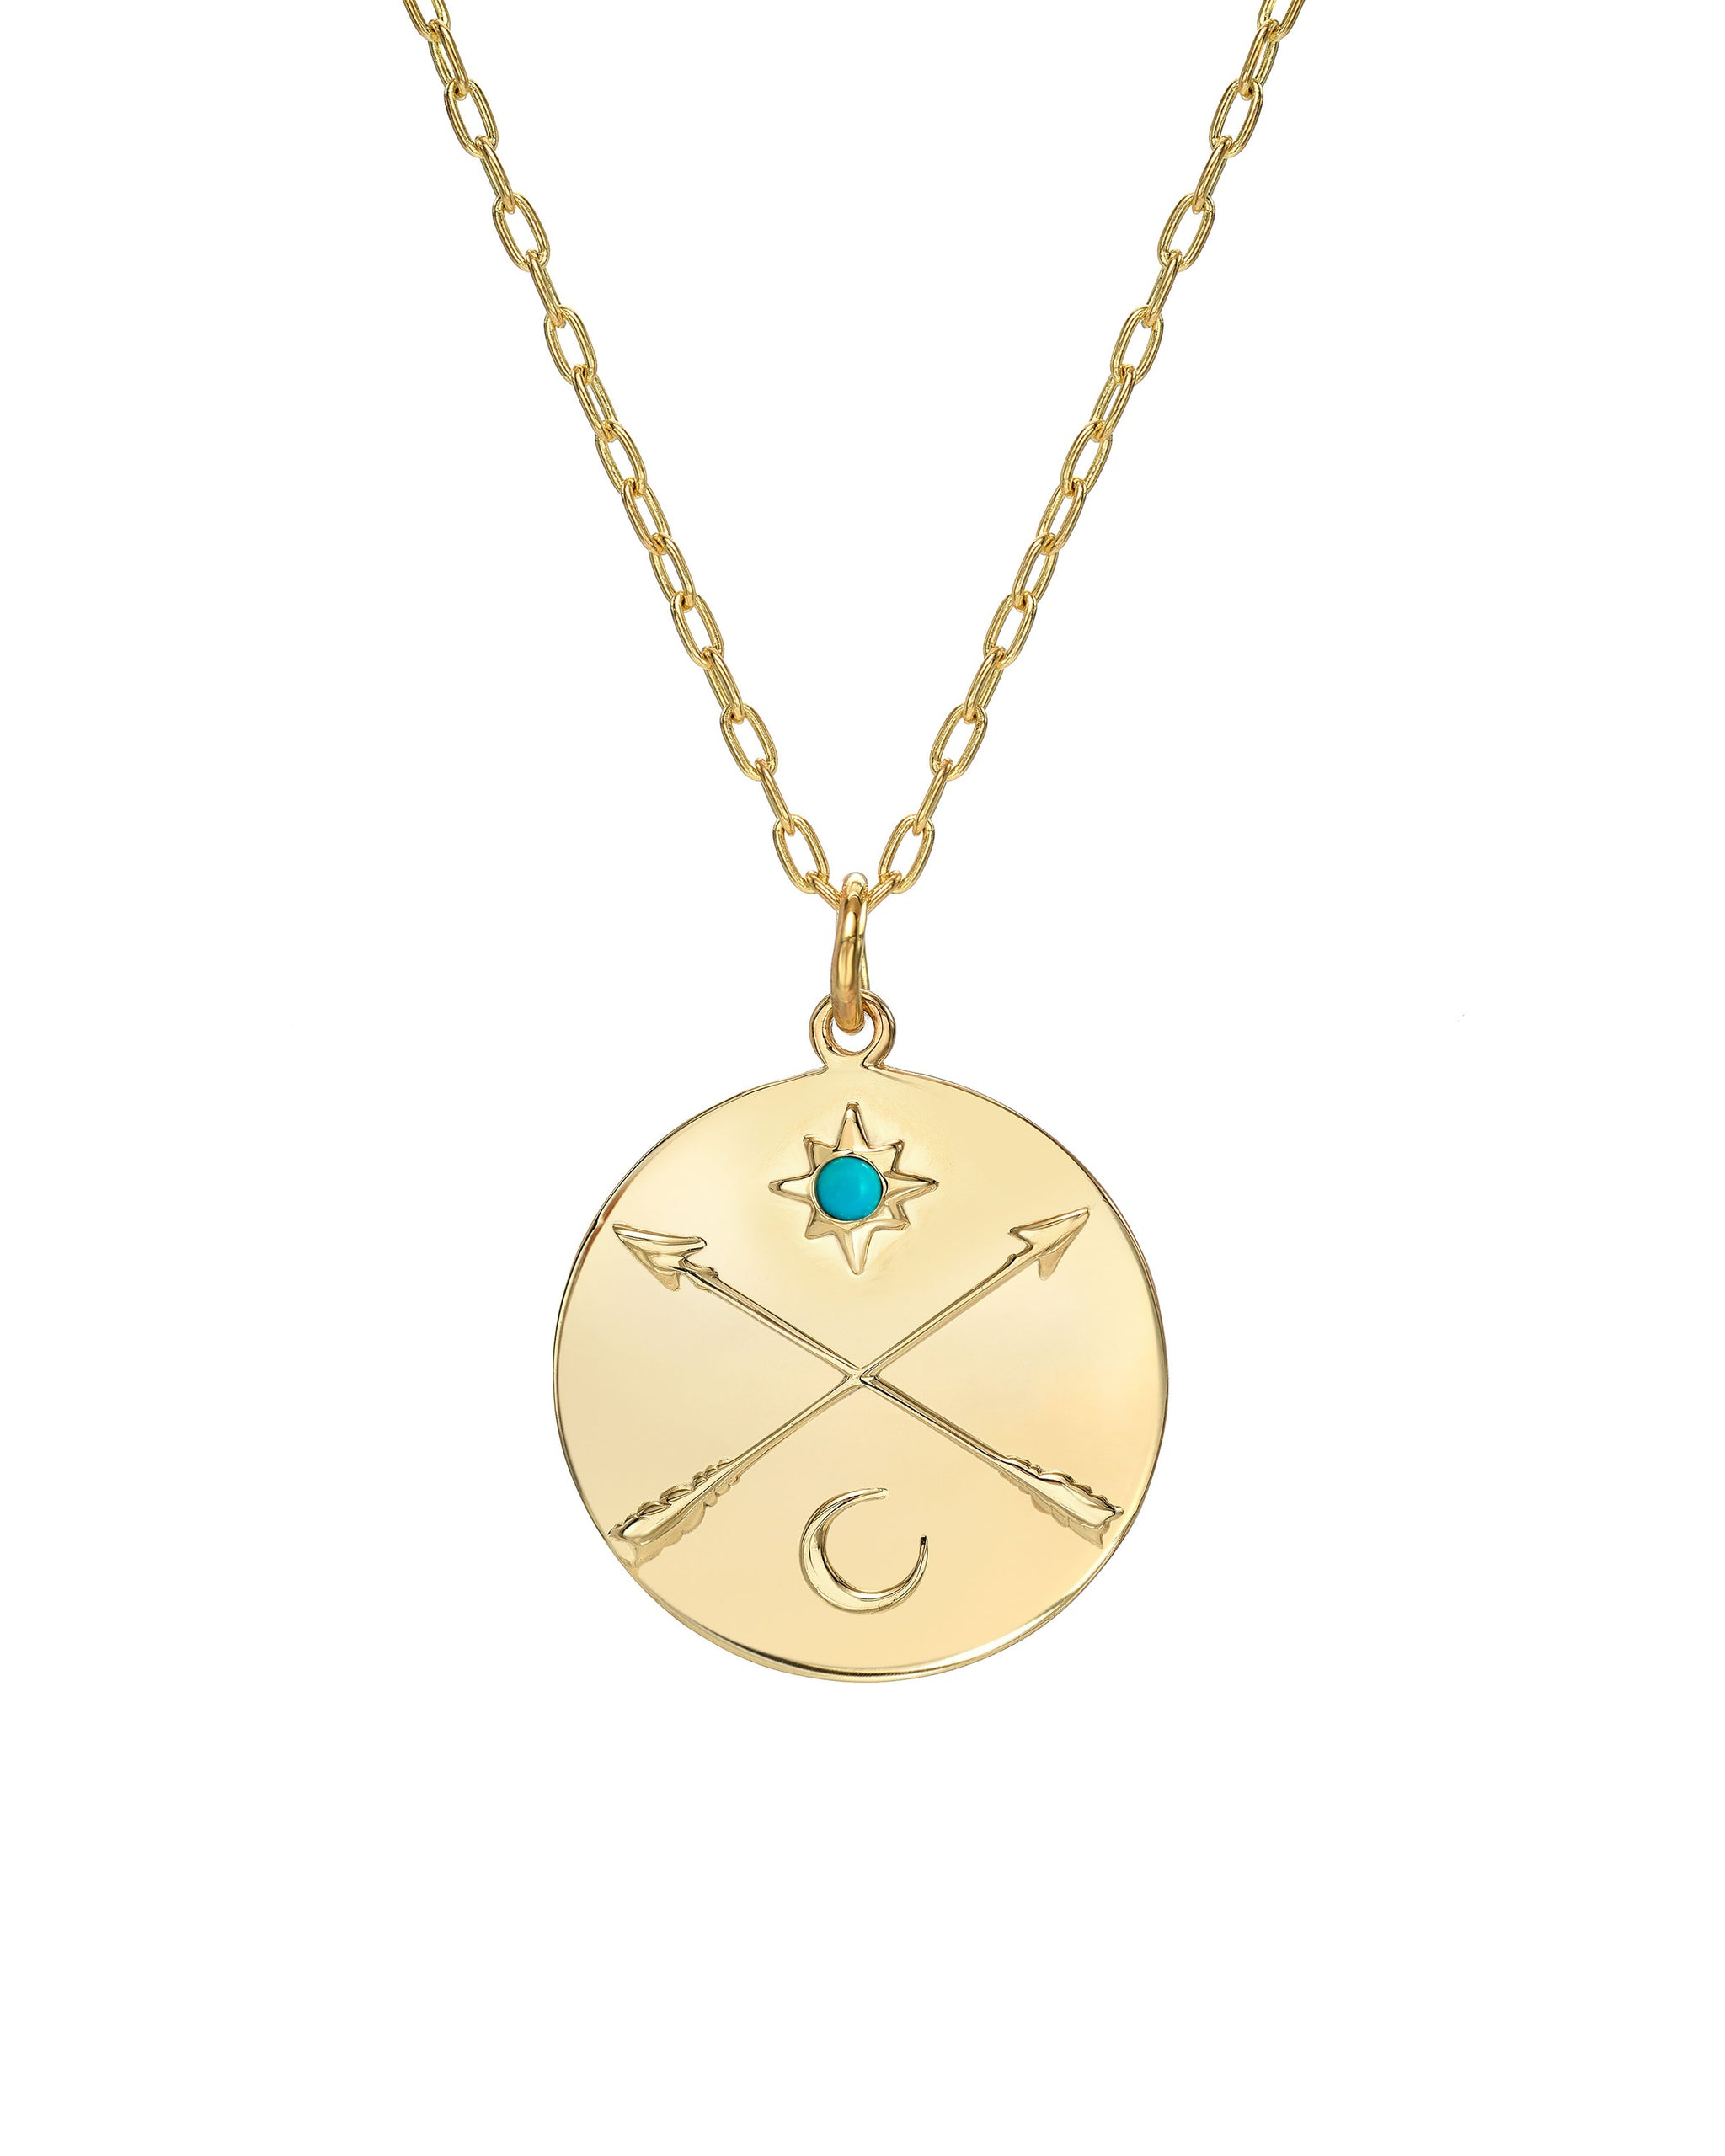 "Nomad Necklace, 14k Gold Vermeil Medallion with Crossed Arrows, Sun and Moon and Sleeping Beauty Turquoise, on a 16""-18"" Adjustable Chain, Handmade in Los Angeles, California"